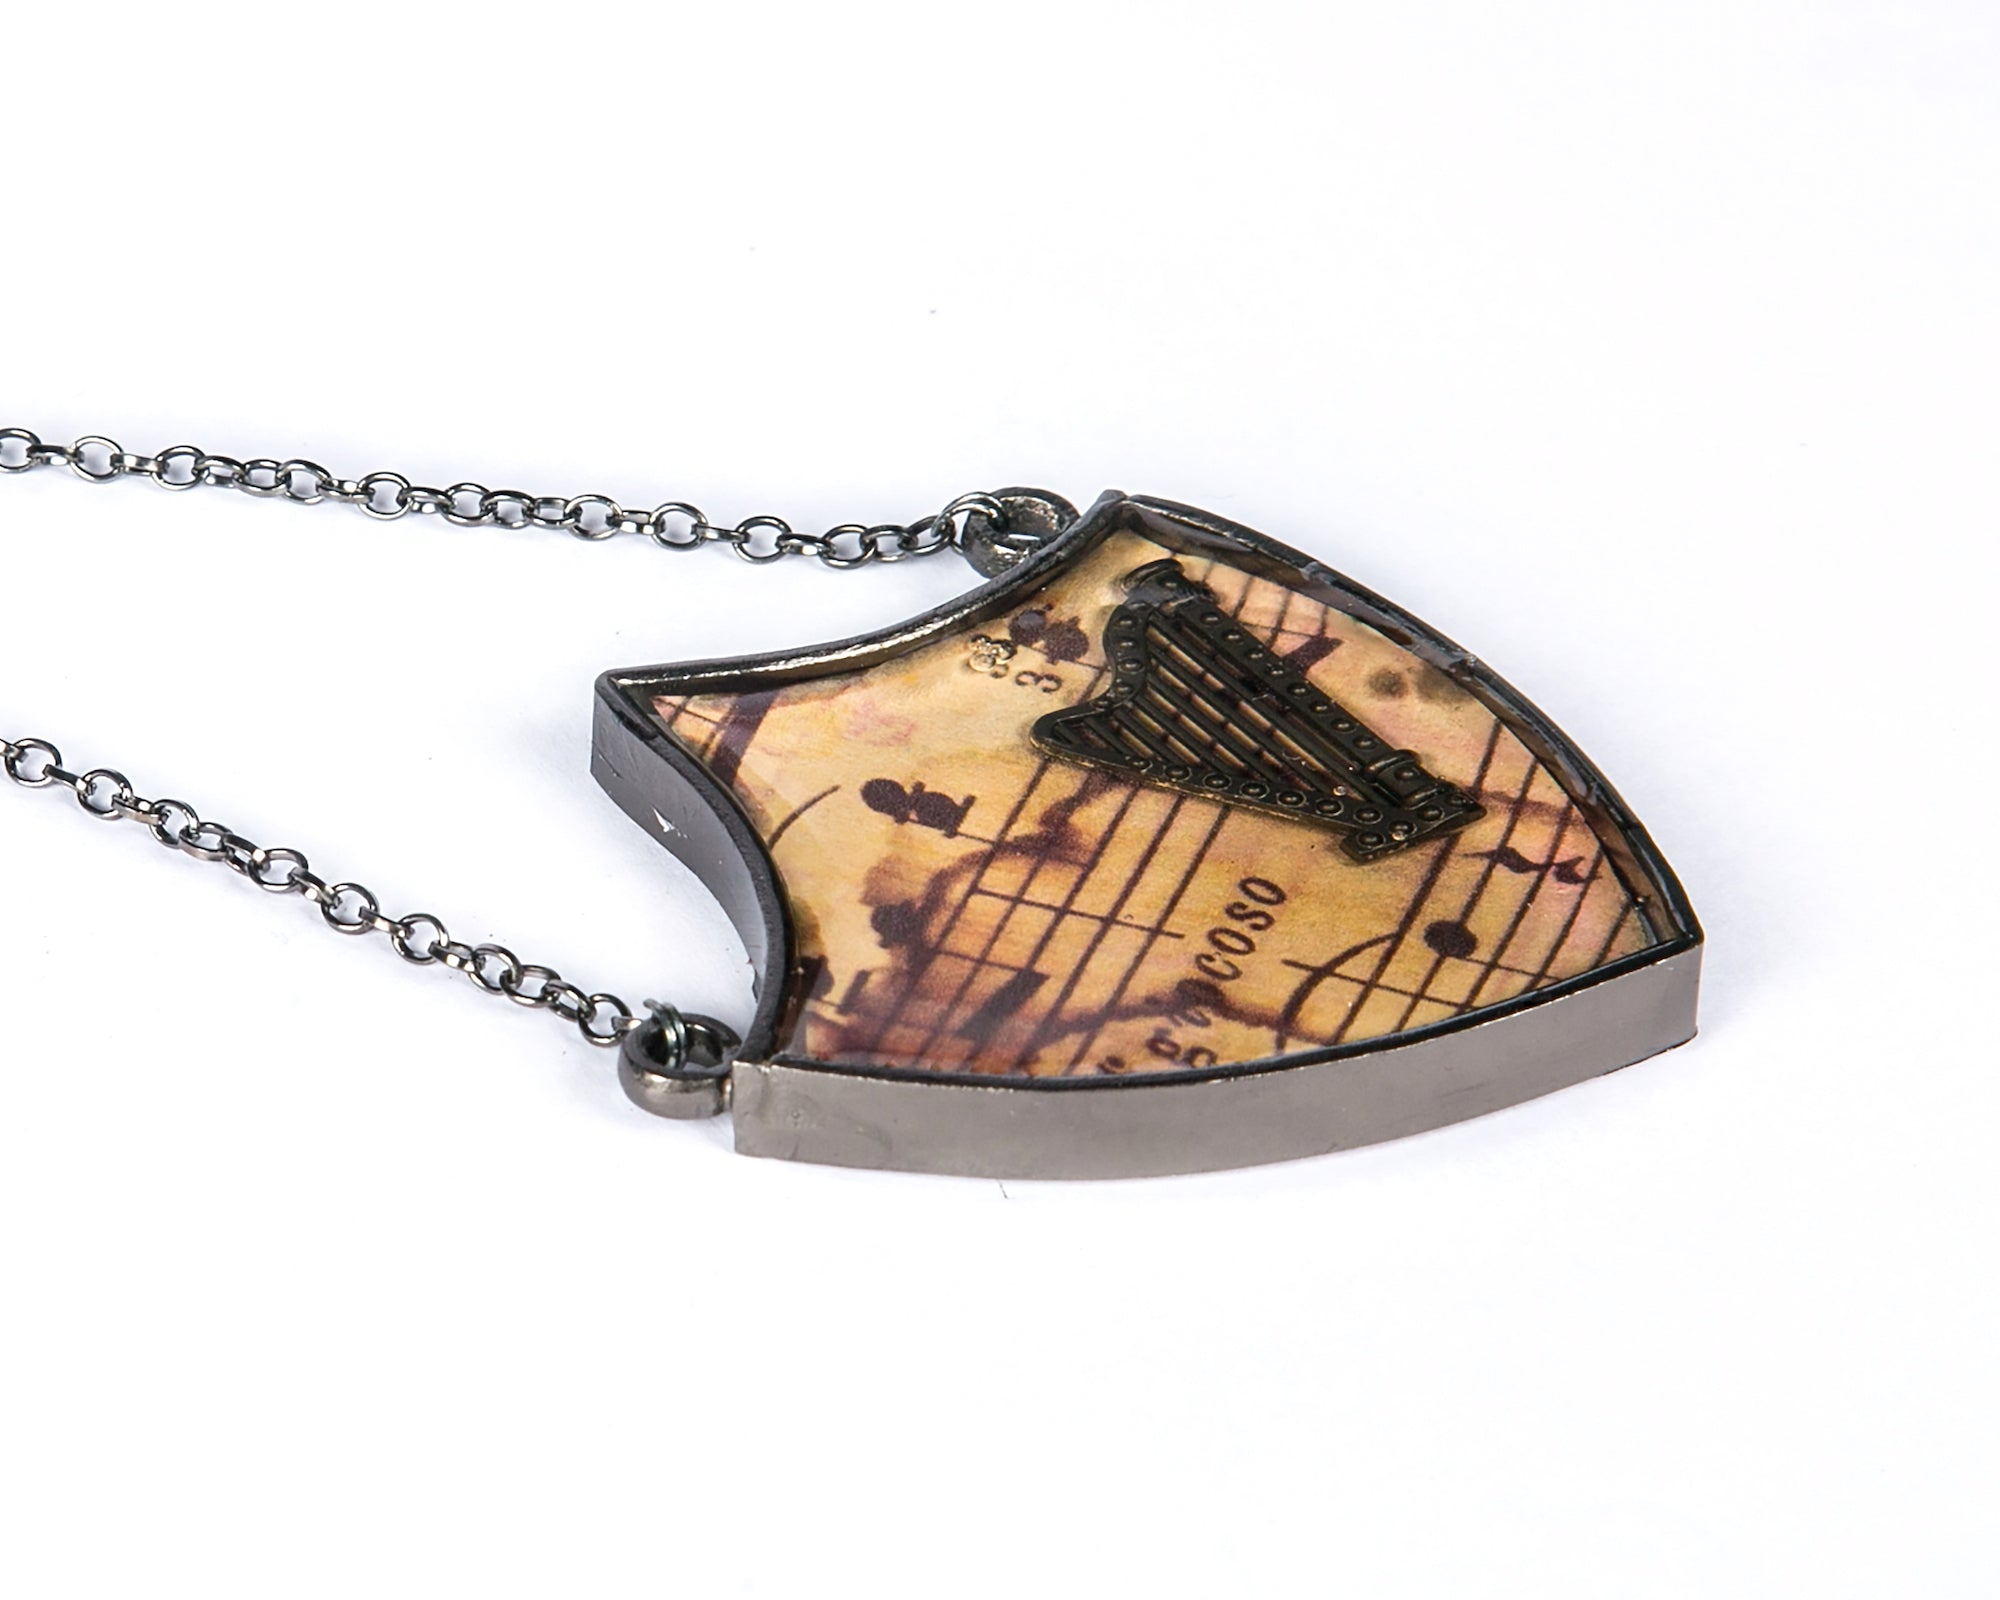 Shield neckpiece with musical instrument harp on musical notes